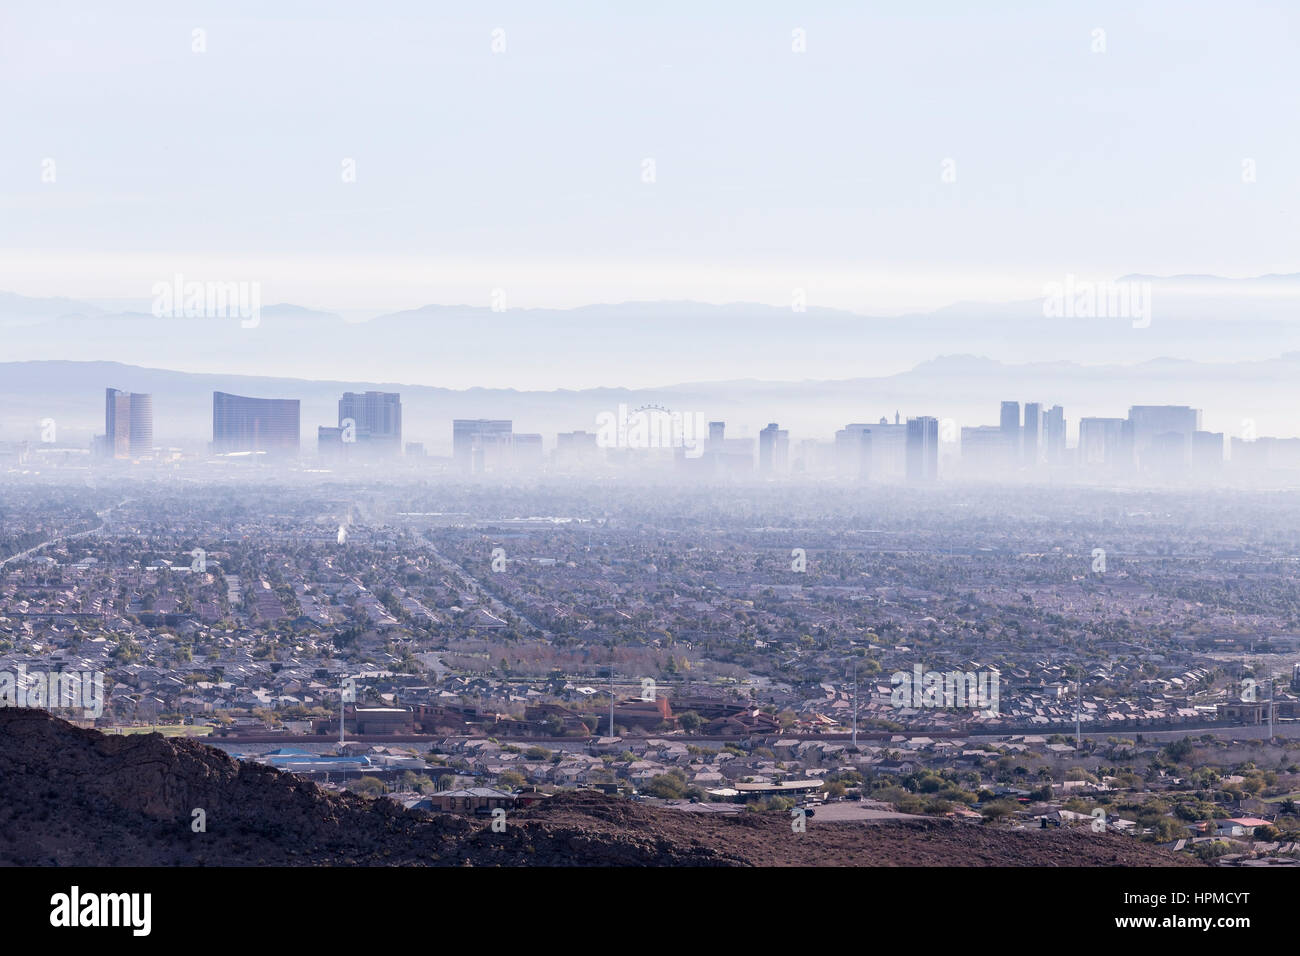 Las Vegas, Nevada, USA - February 4, 2015:  Las Vegas valley haze and smog. Stock Photo